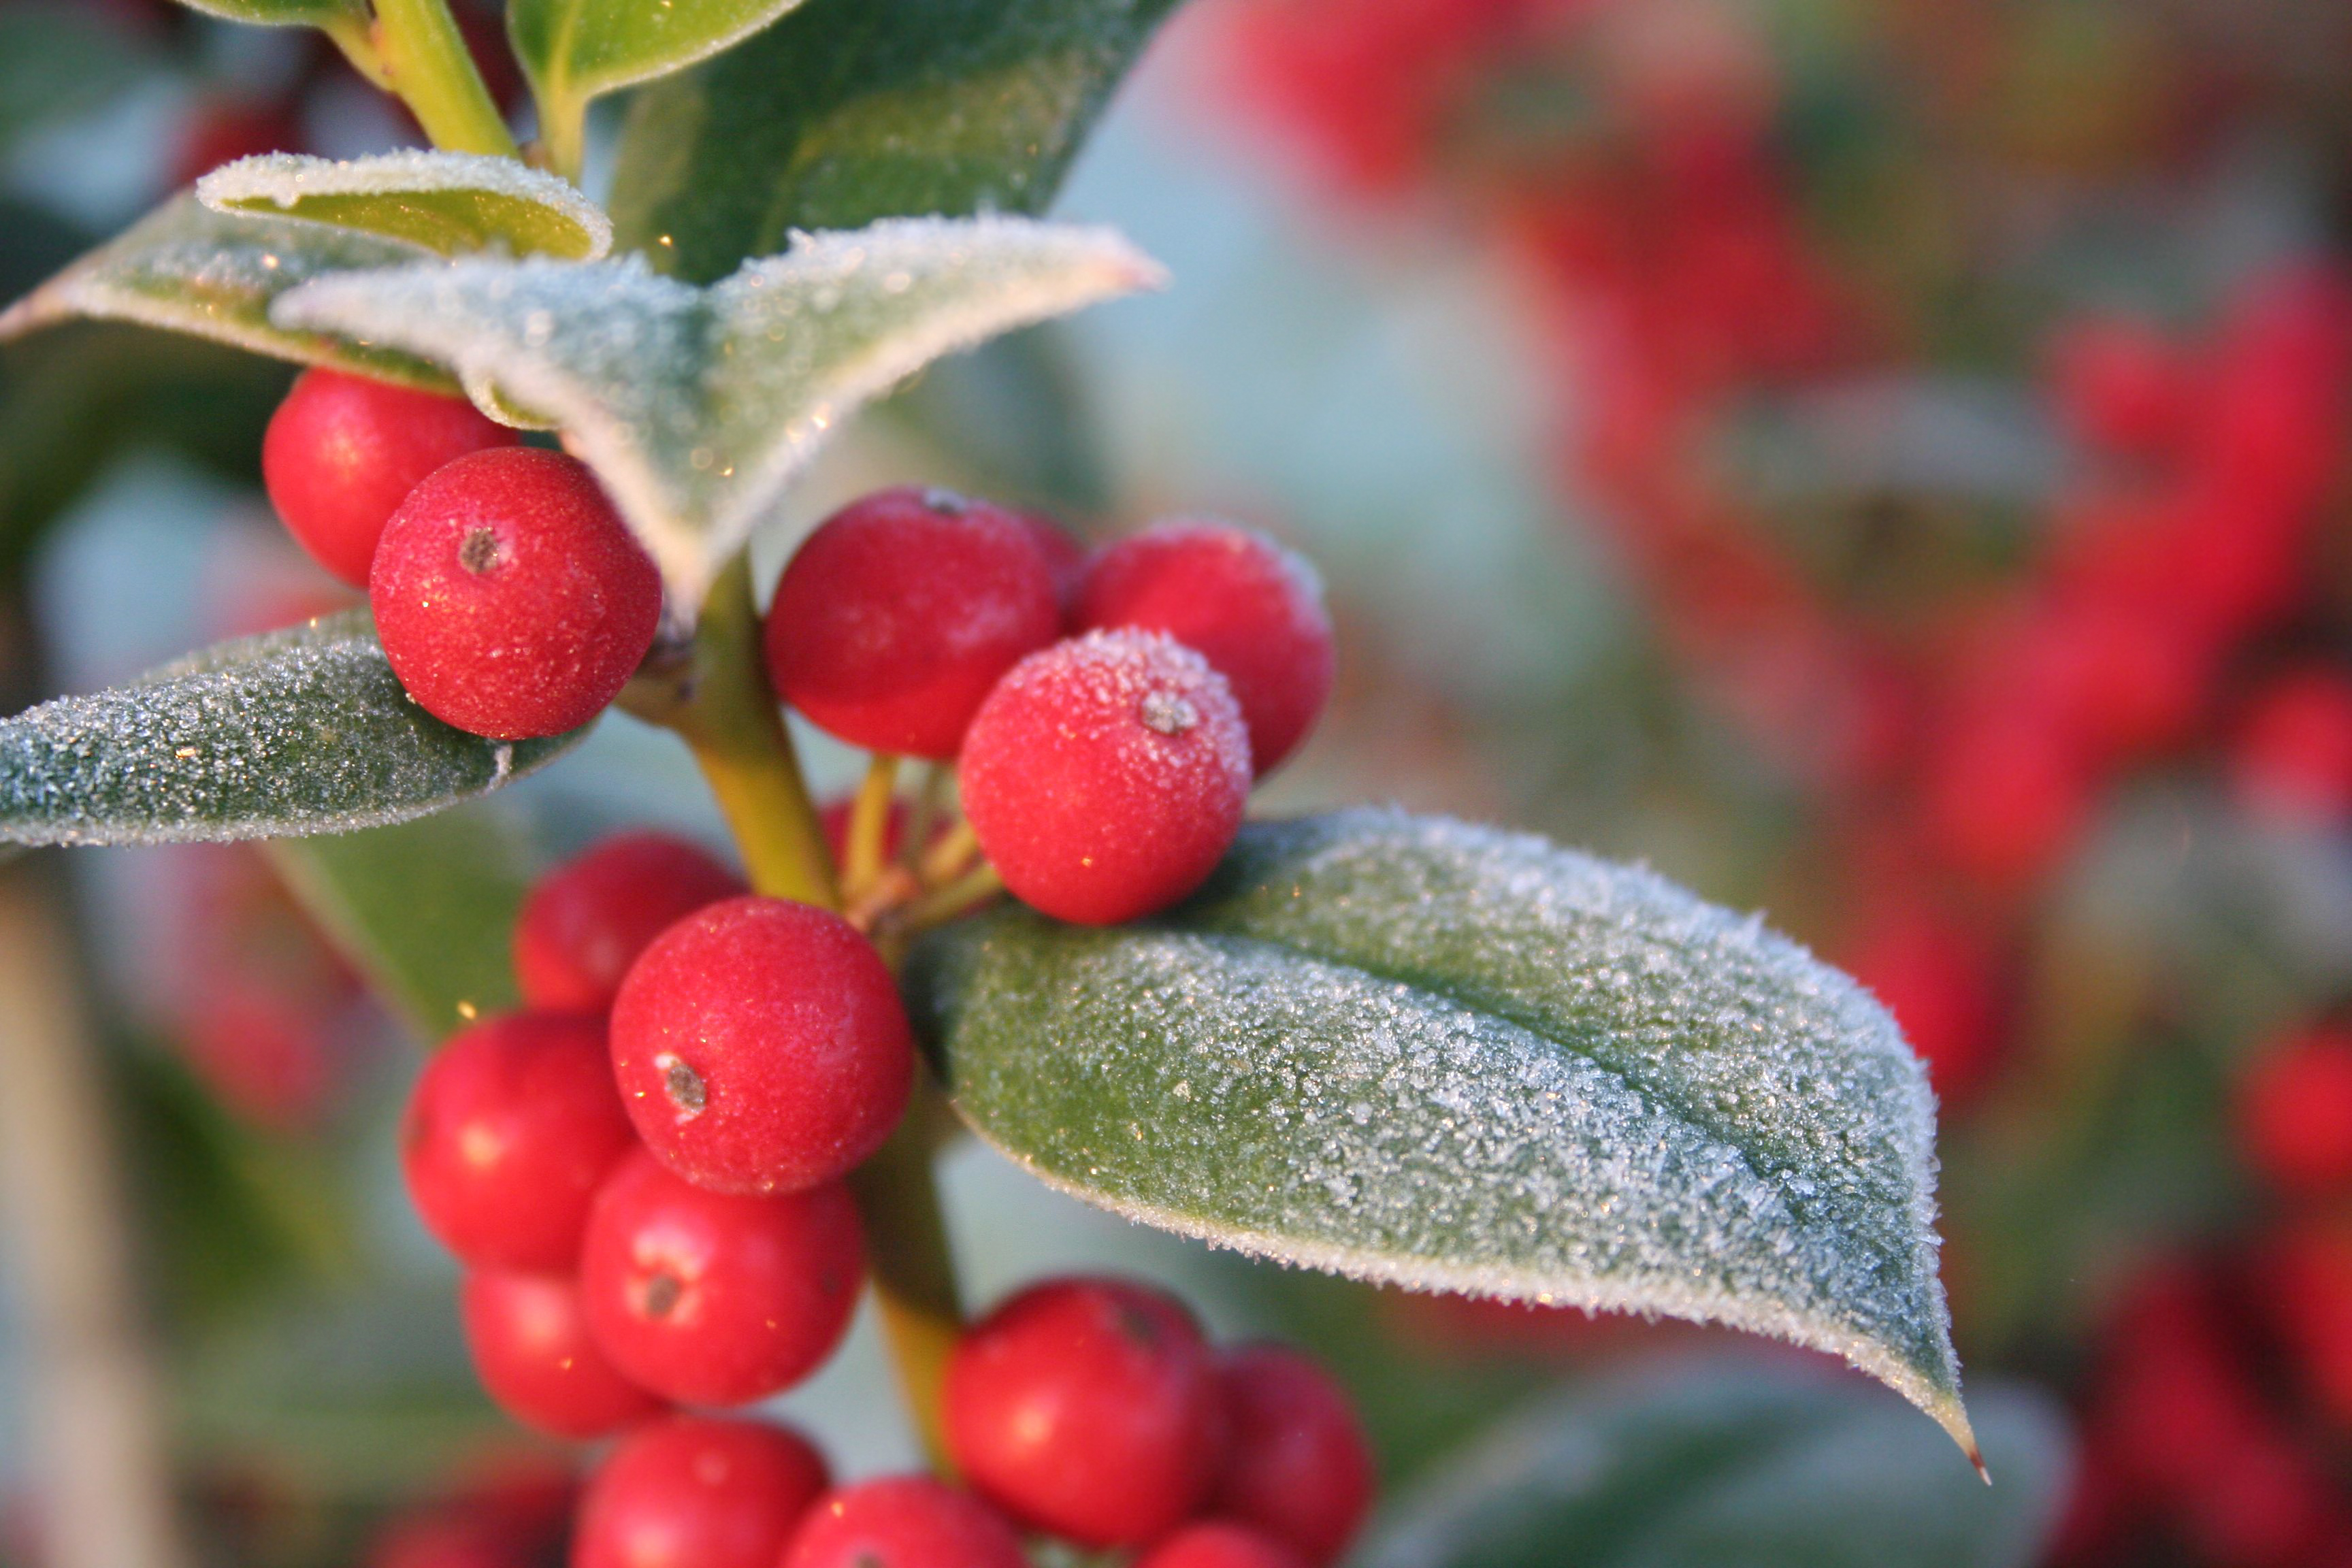 Bushes Or Shrubs With Red Berries Home Guides Sf Gate